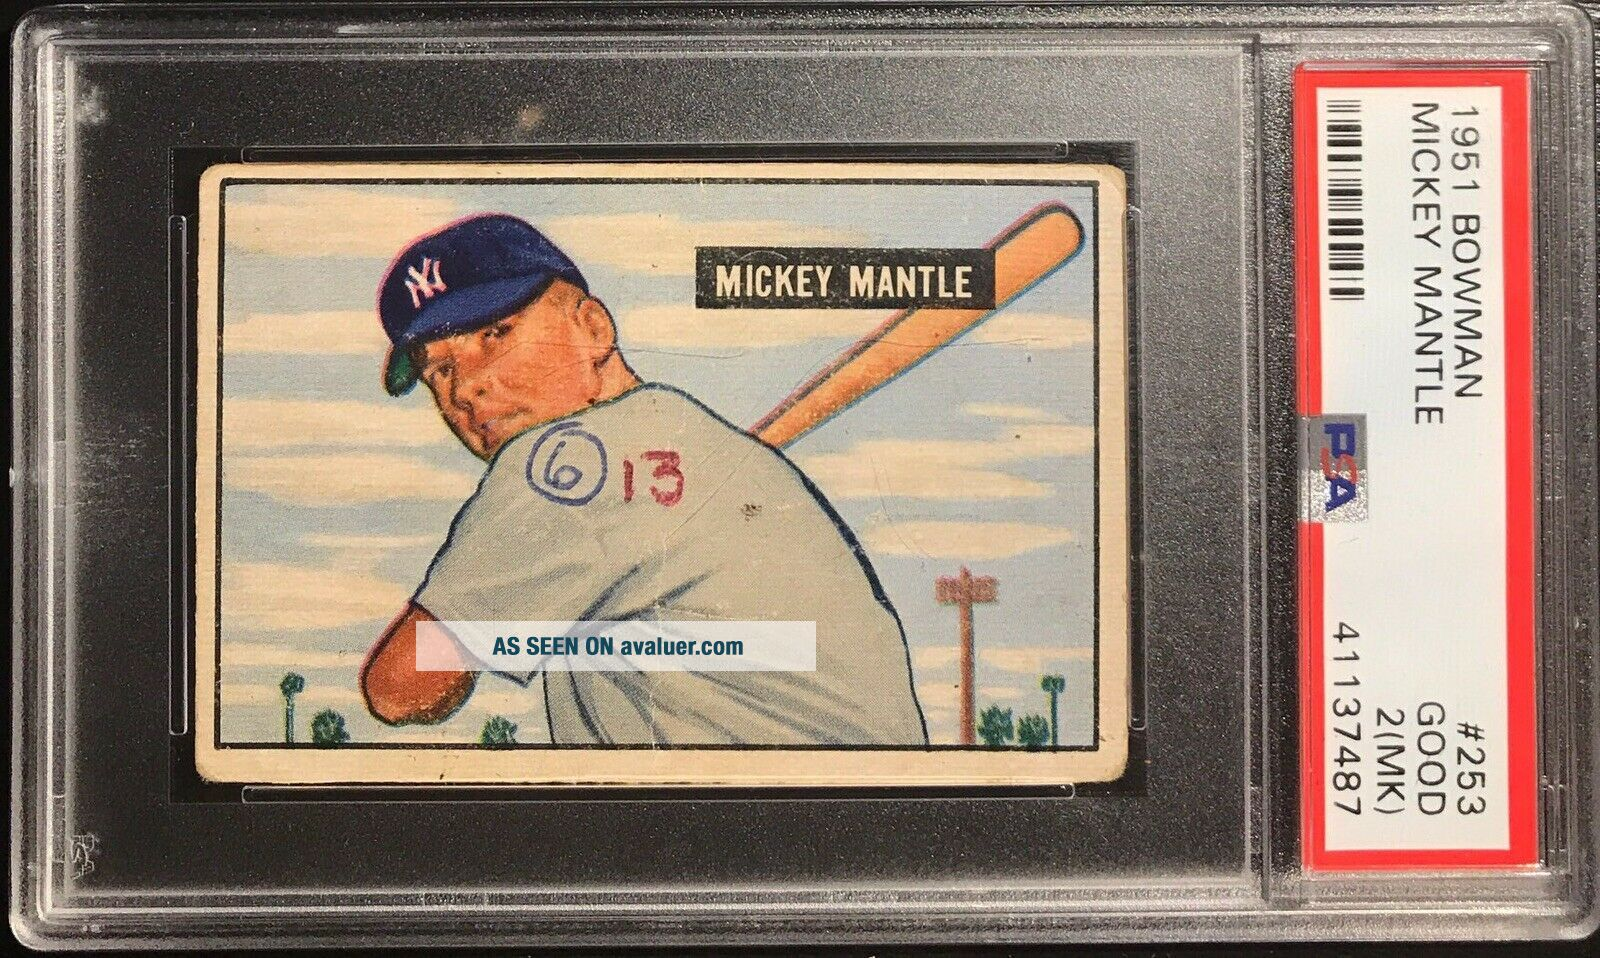 1951 Bowman Mickey Mantle Rookie RC Card 253 PSA 2 (MK) Good - Iconic Card